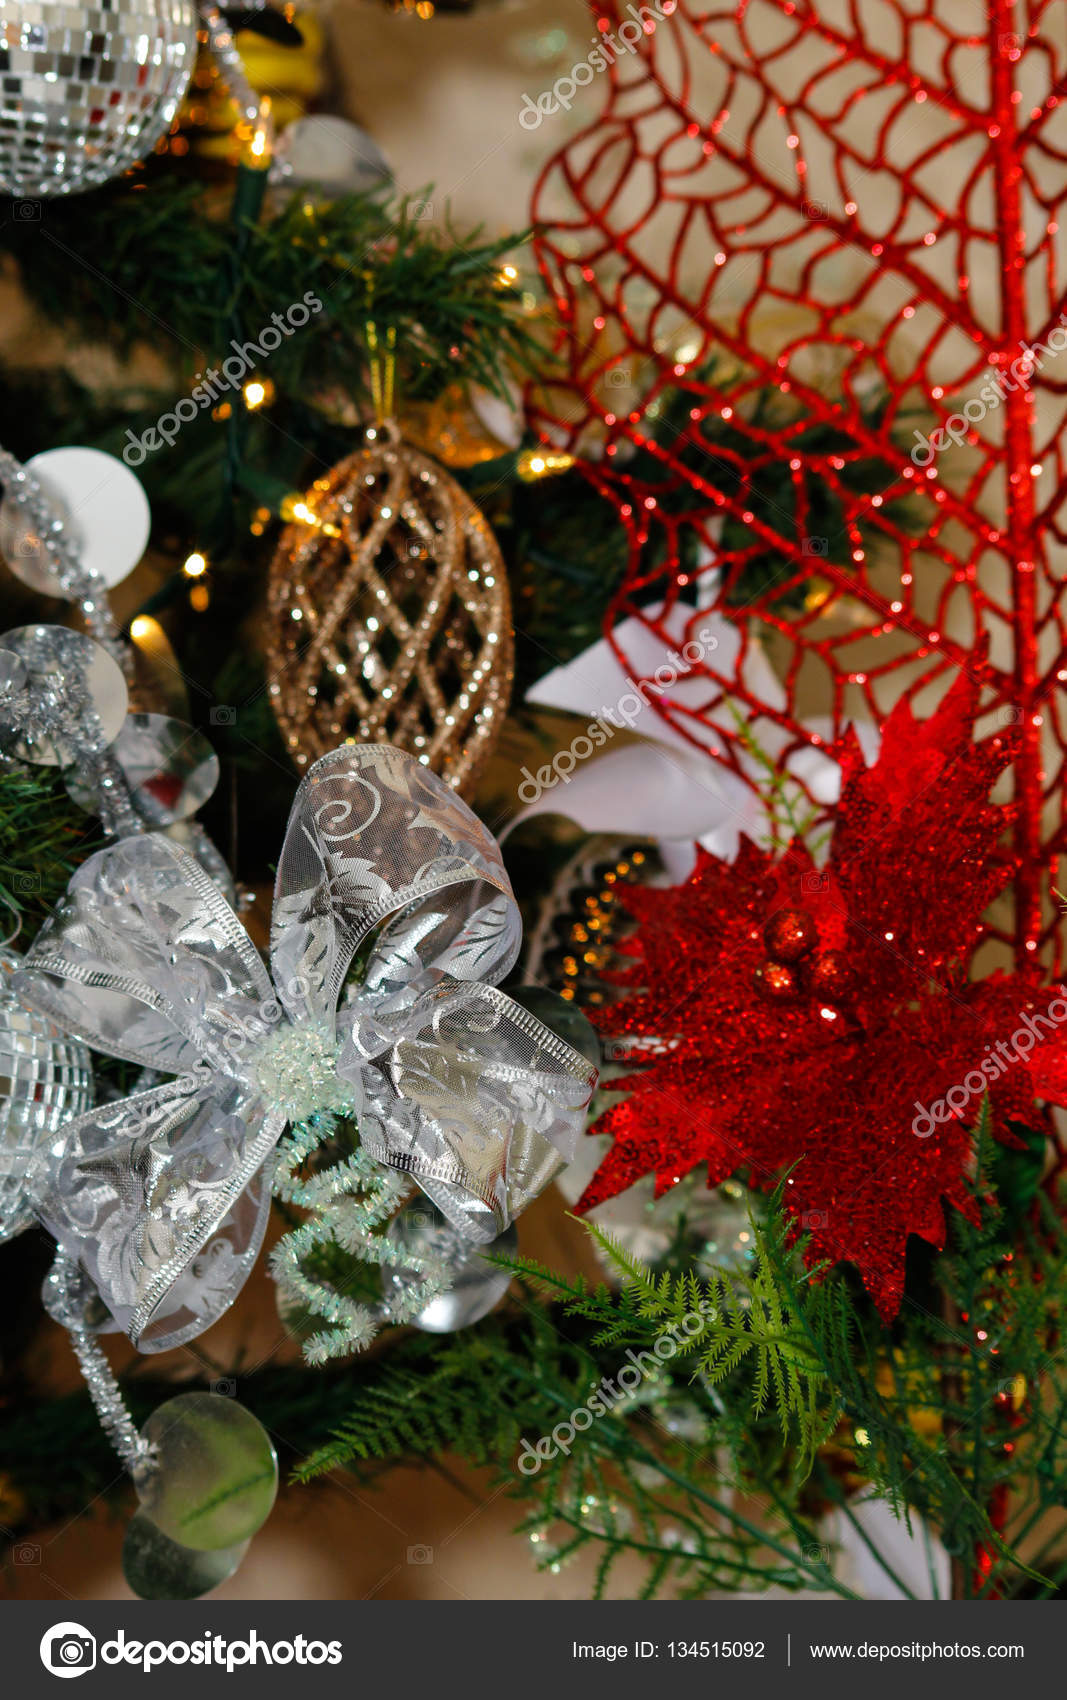 Red White And Silver Christmas Tree.Red White And Silver Christmas Decorations Silver White